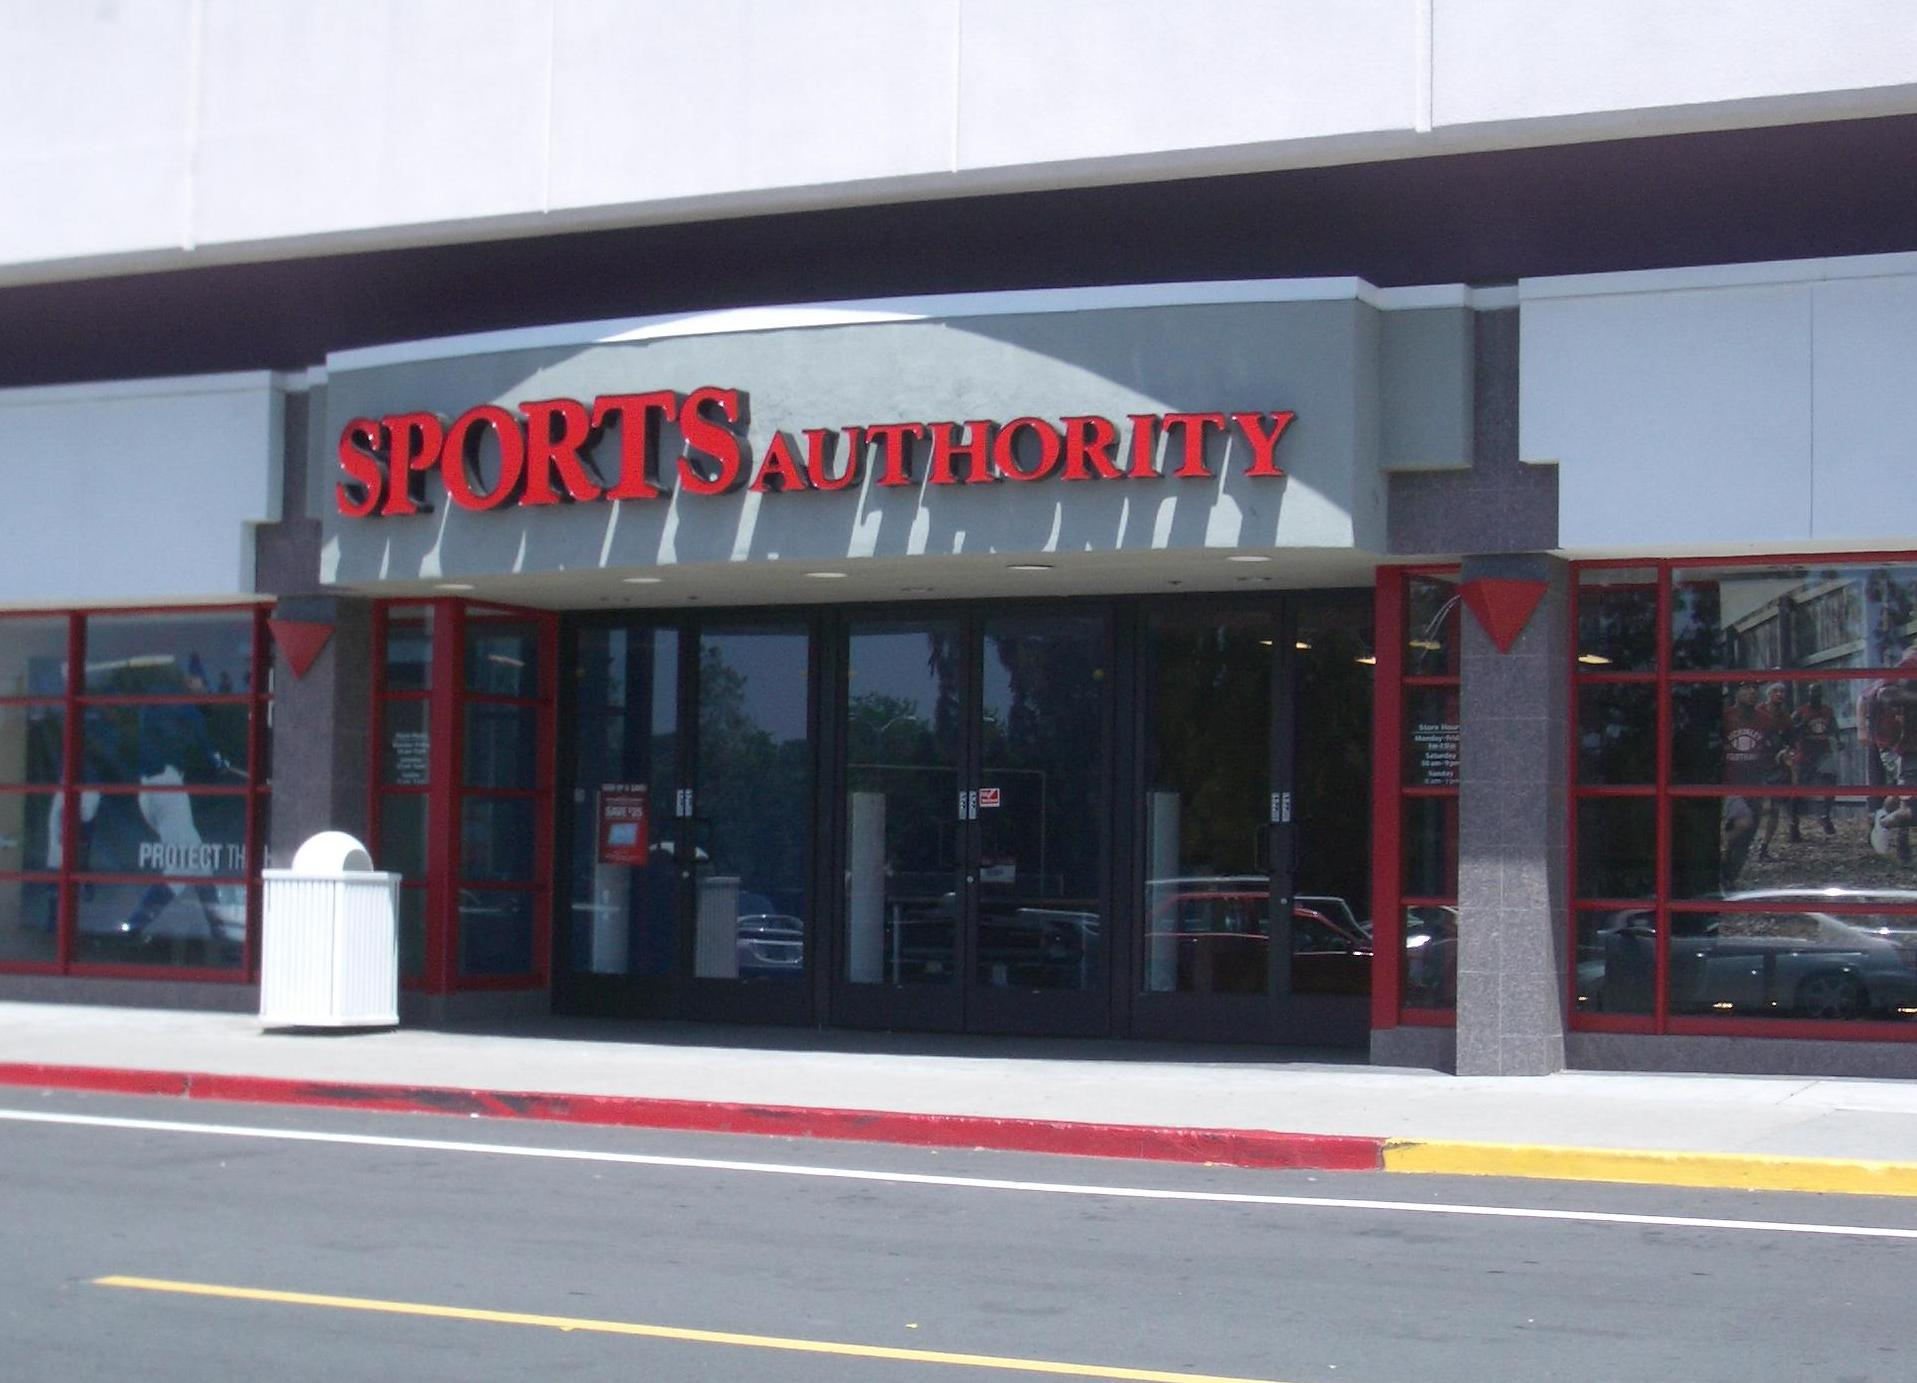 File:Sports Authority in Concord.JPG - Wikipedia, the free ...